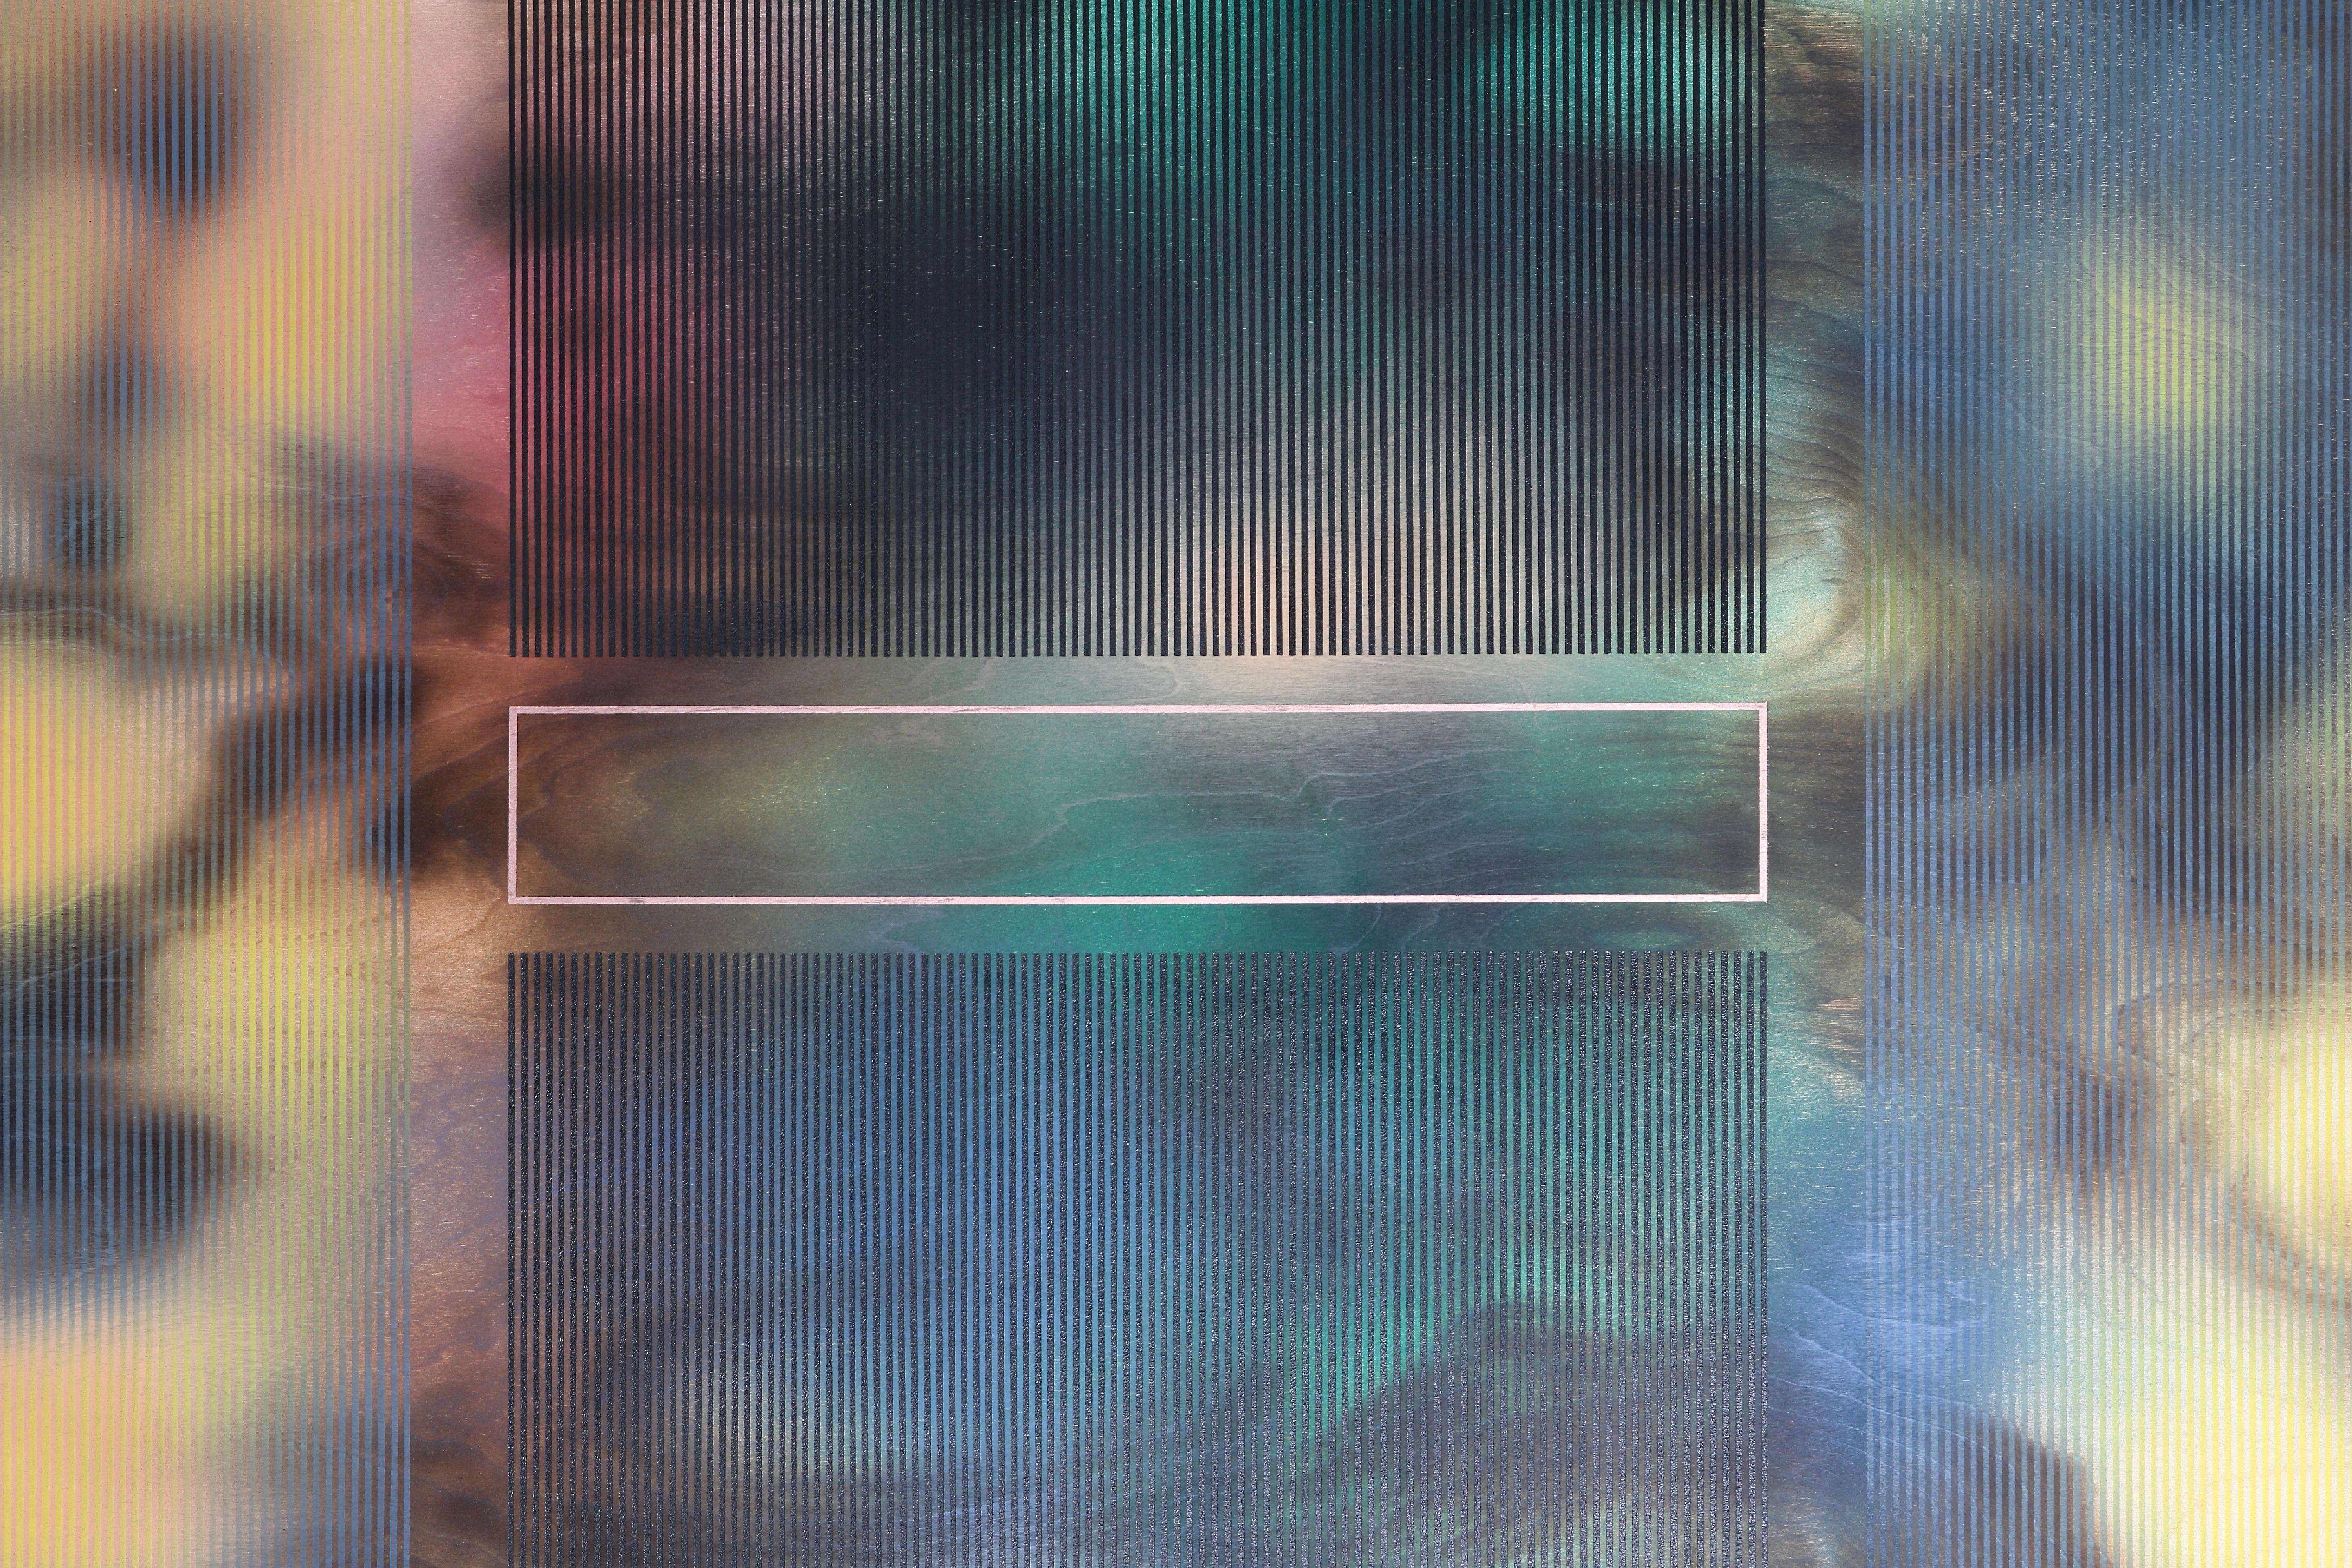 d'Ombré 3 (grid painting abstract geometry optical grey yellow green patterns)